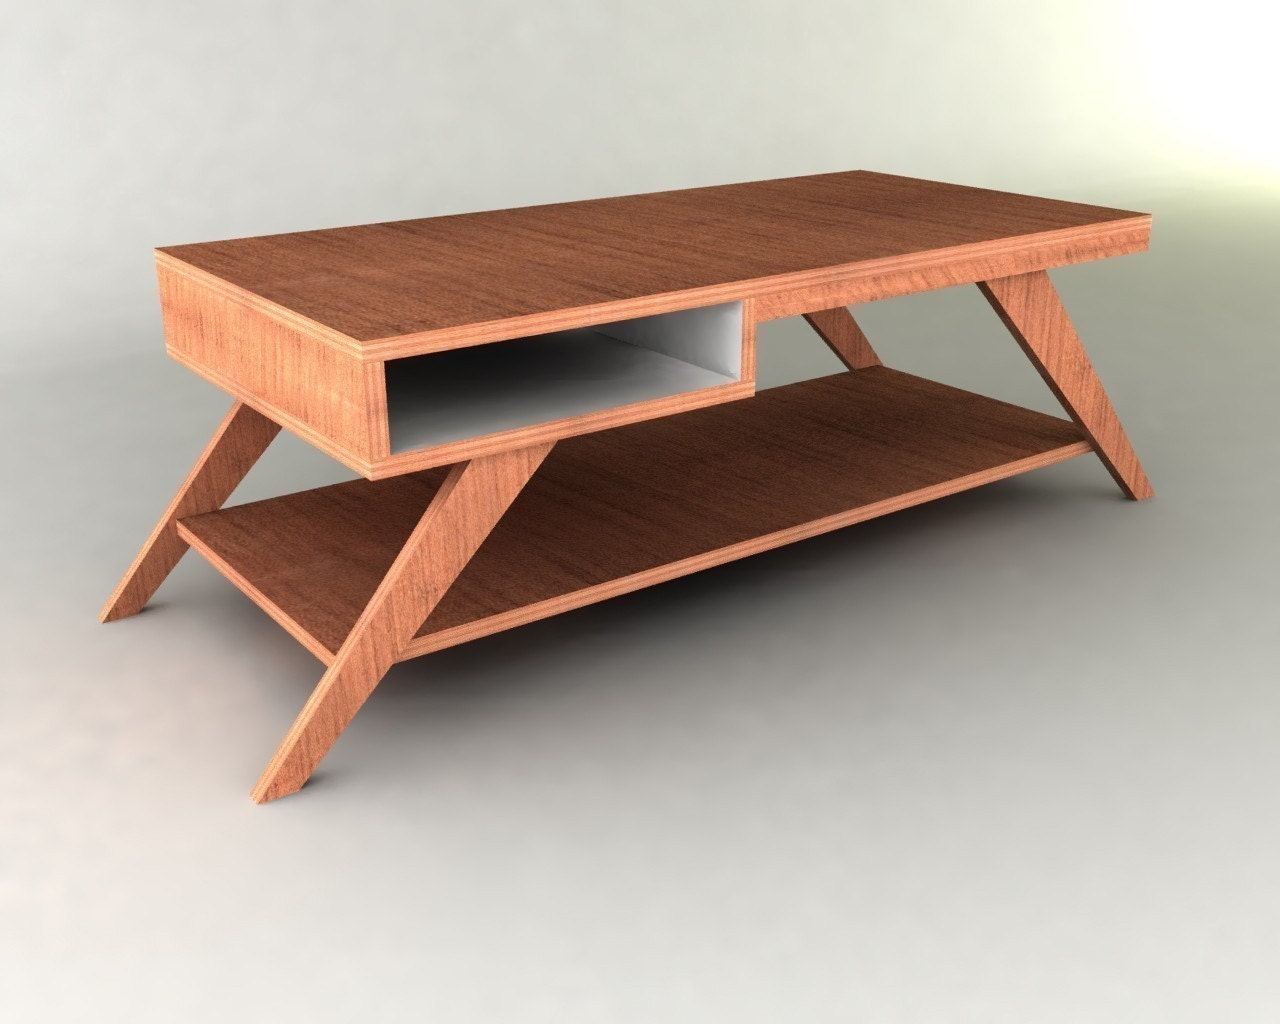 Retro modern eames style coffee table furniture plan for Modern wood furniture